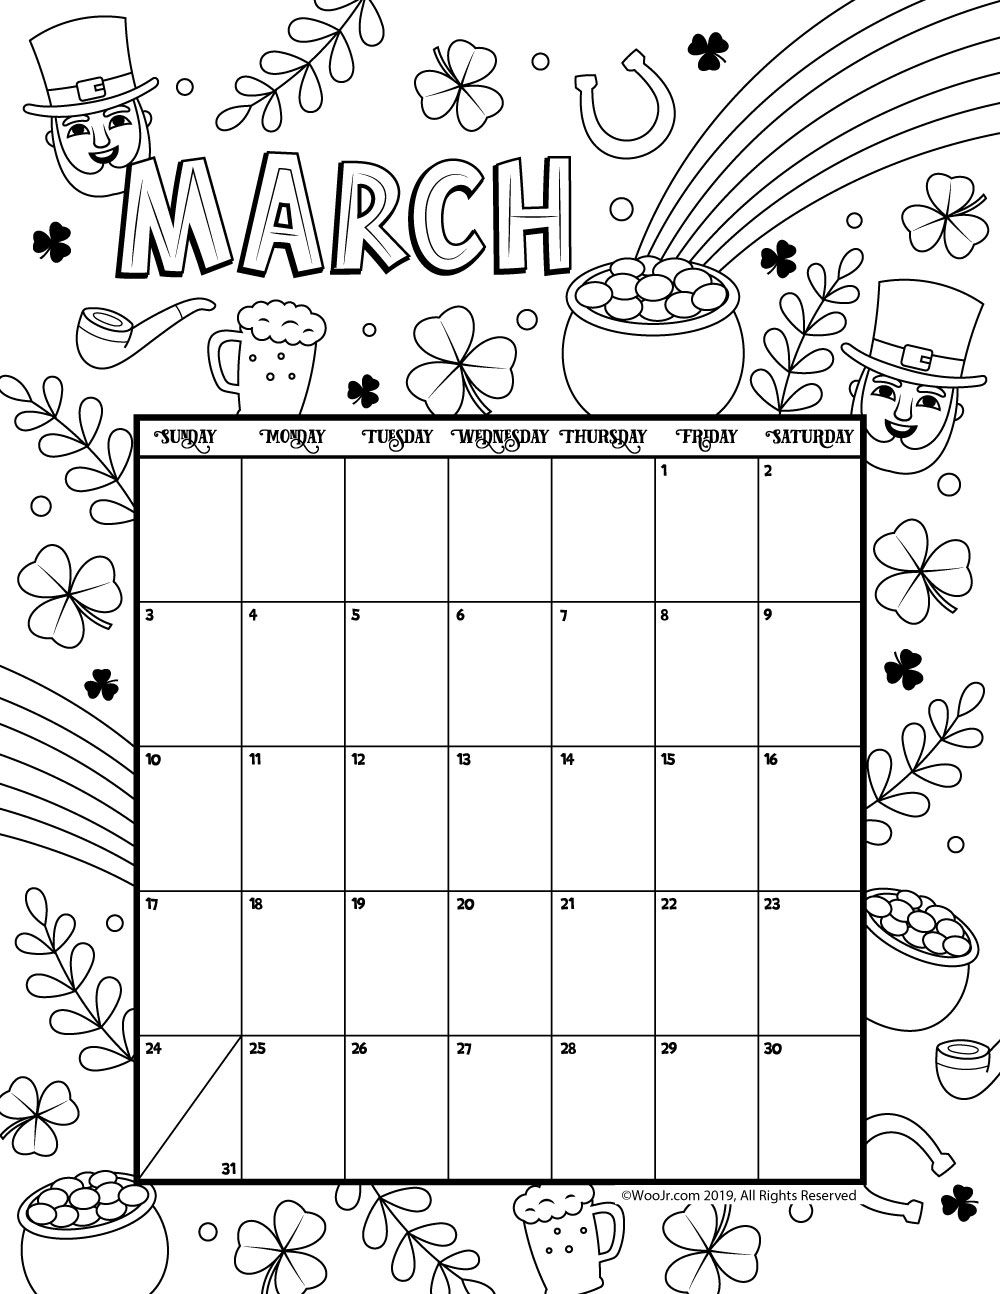 2019 Coloring Calendar With March Calender Pinterest